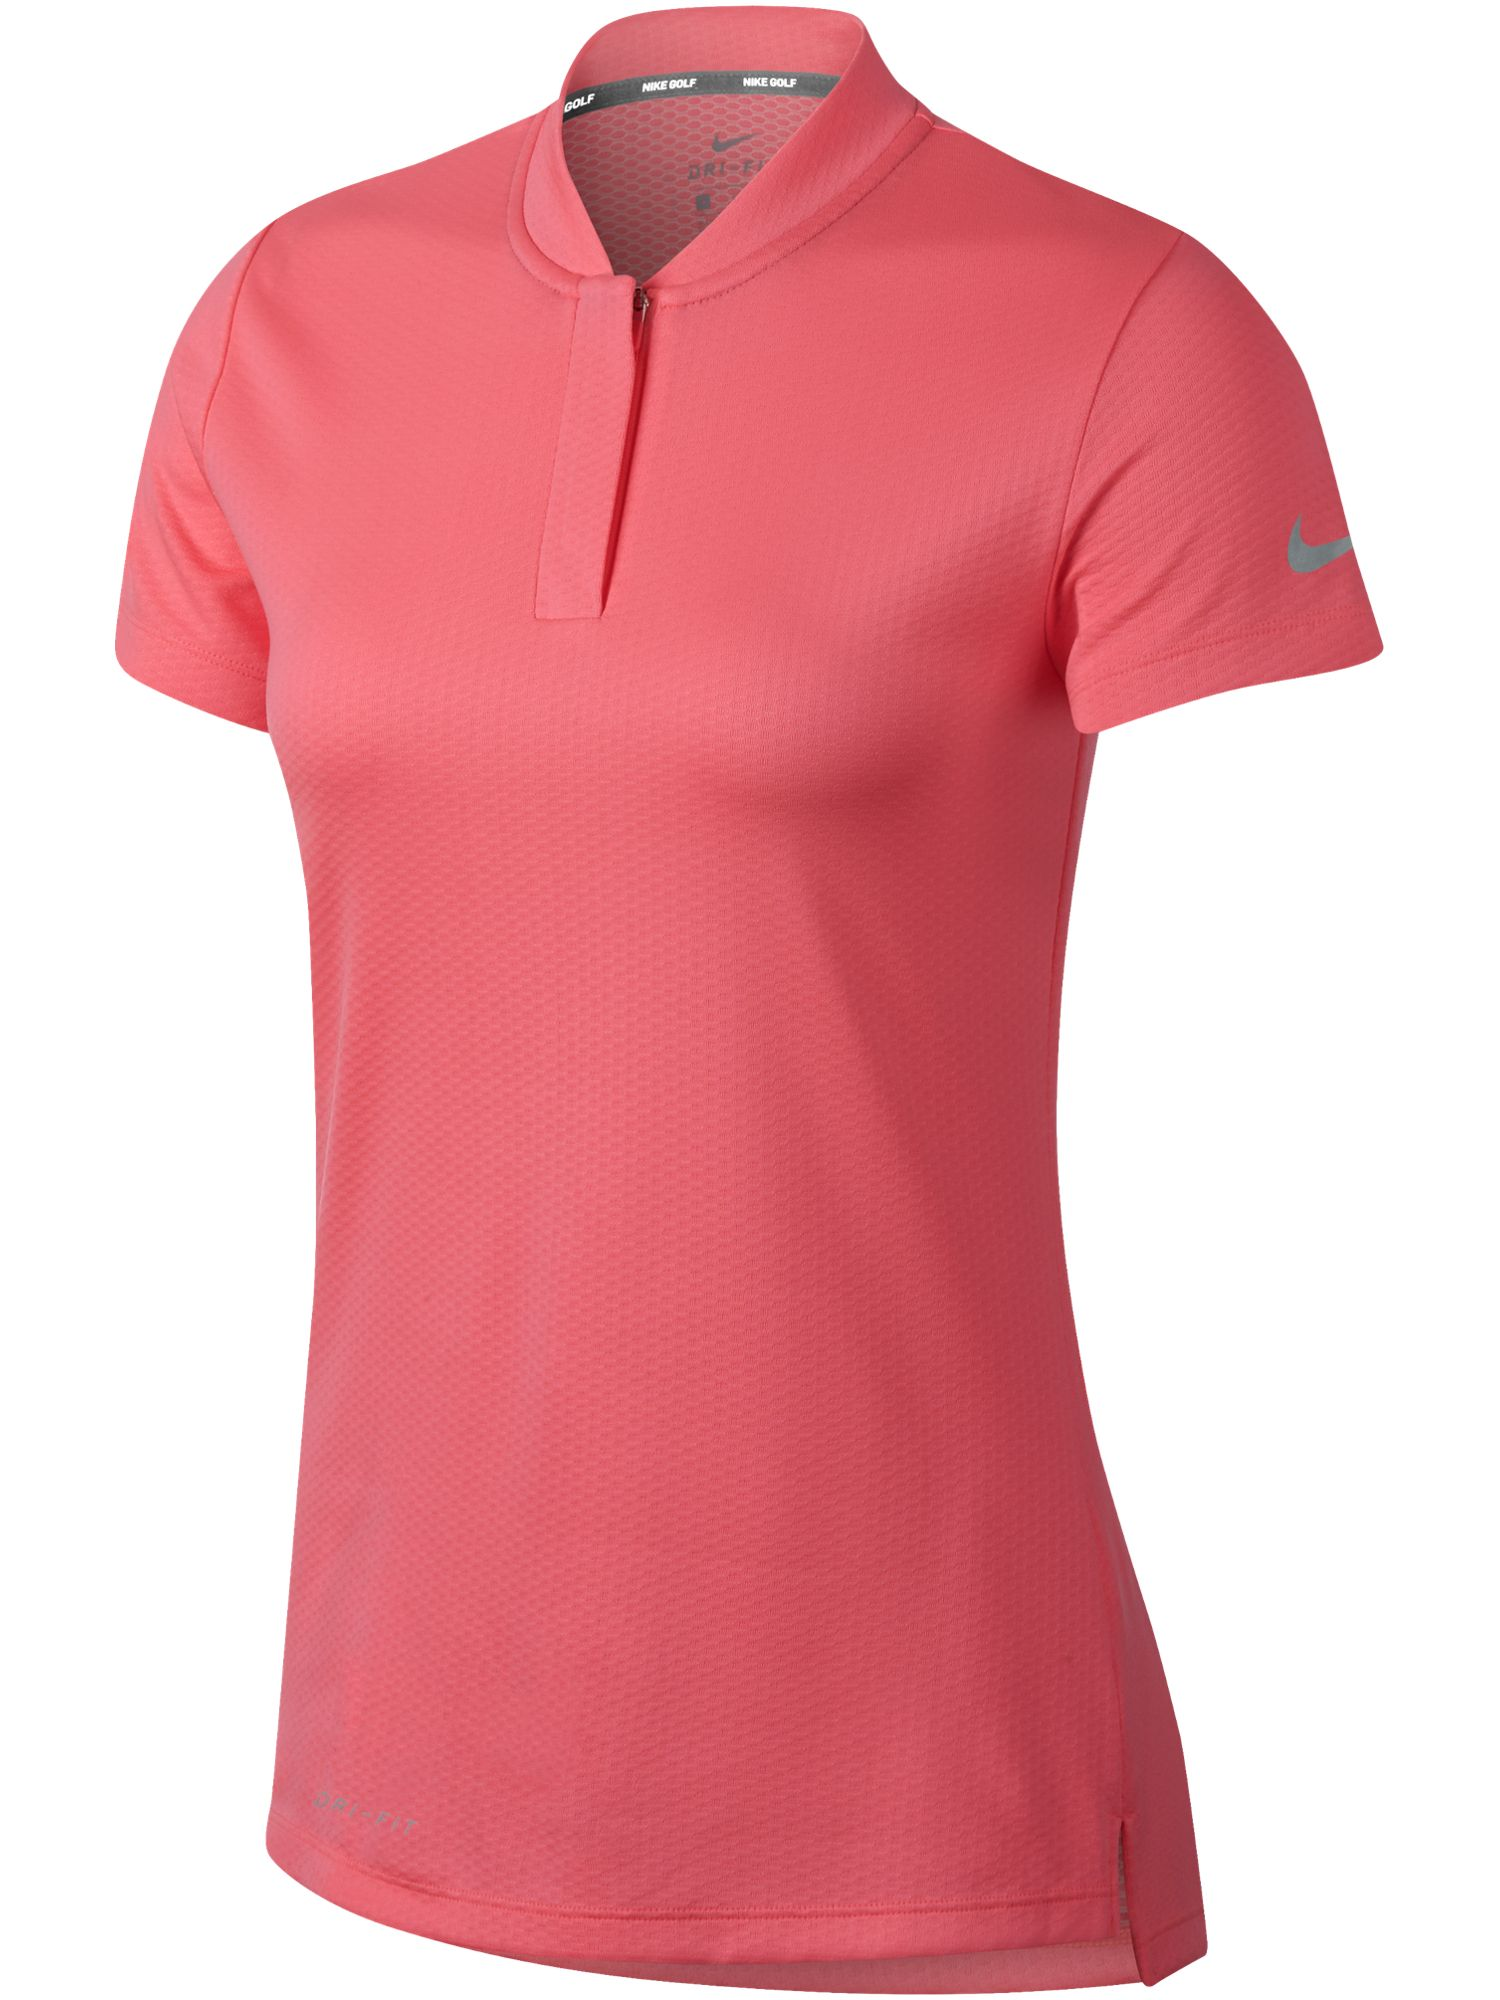 Nike Golf Short Sleeve Blade Polo, Pink Silverlic